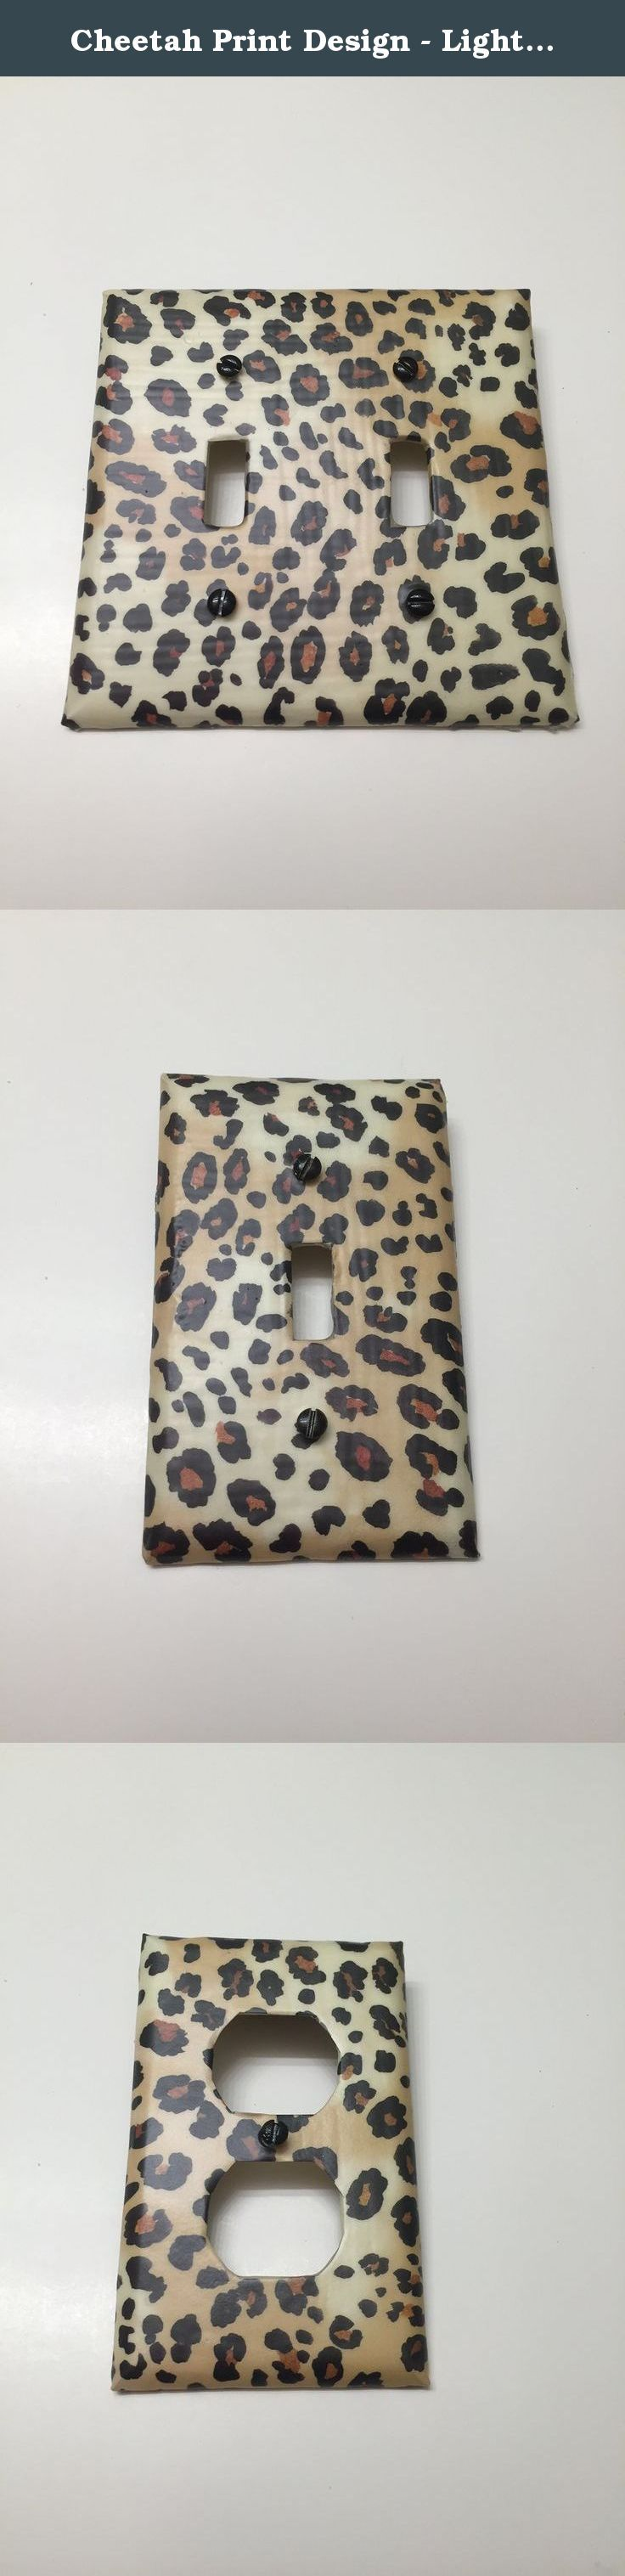 Cheetah Print Design - Light switch plates, Light switch covers, outlet covers, outlet plates, MULTI DESIGN, animal print, home decor, wall art. Fashion forward designs that just a pop of color where you did not think it would matter! Looks like a little piece of art décor on the wall. Each plate will includes - a hand painted coordinating screw for to compliment each design. (some are white/cream or colored depending on the design and color or paper used). Most covers are hand made to...